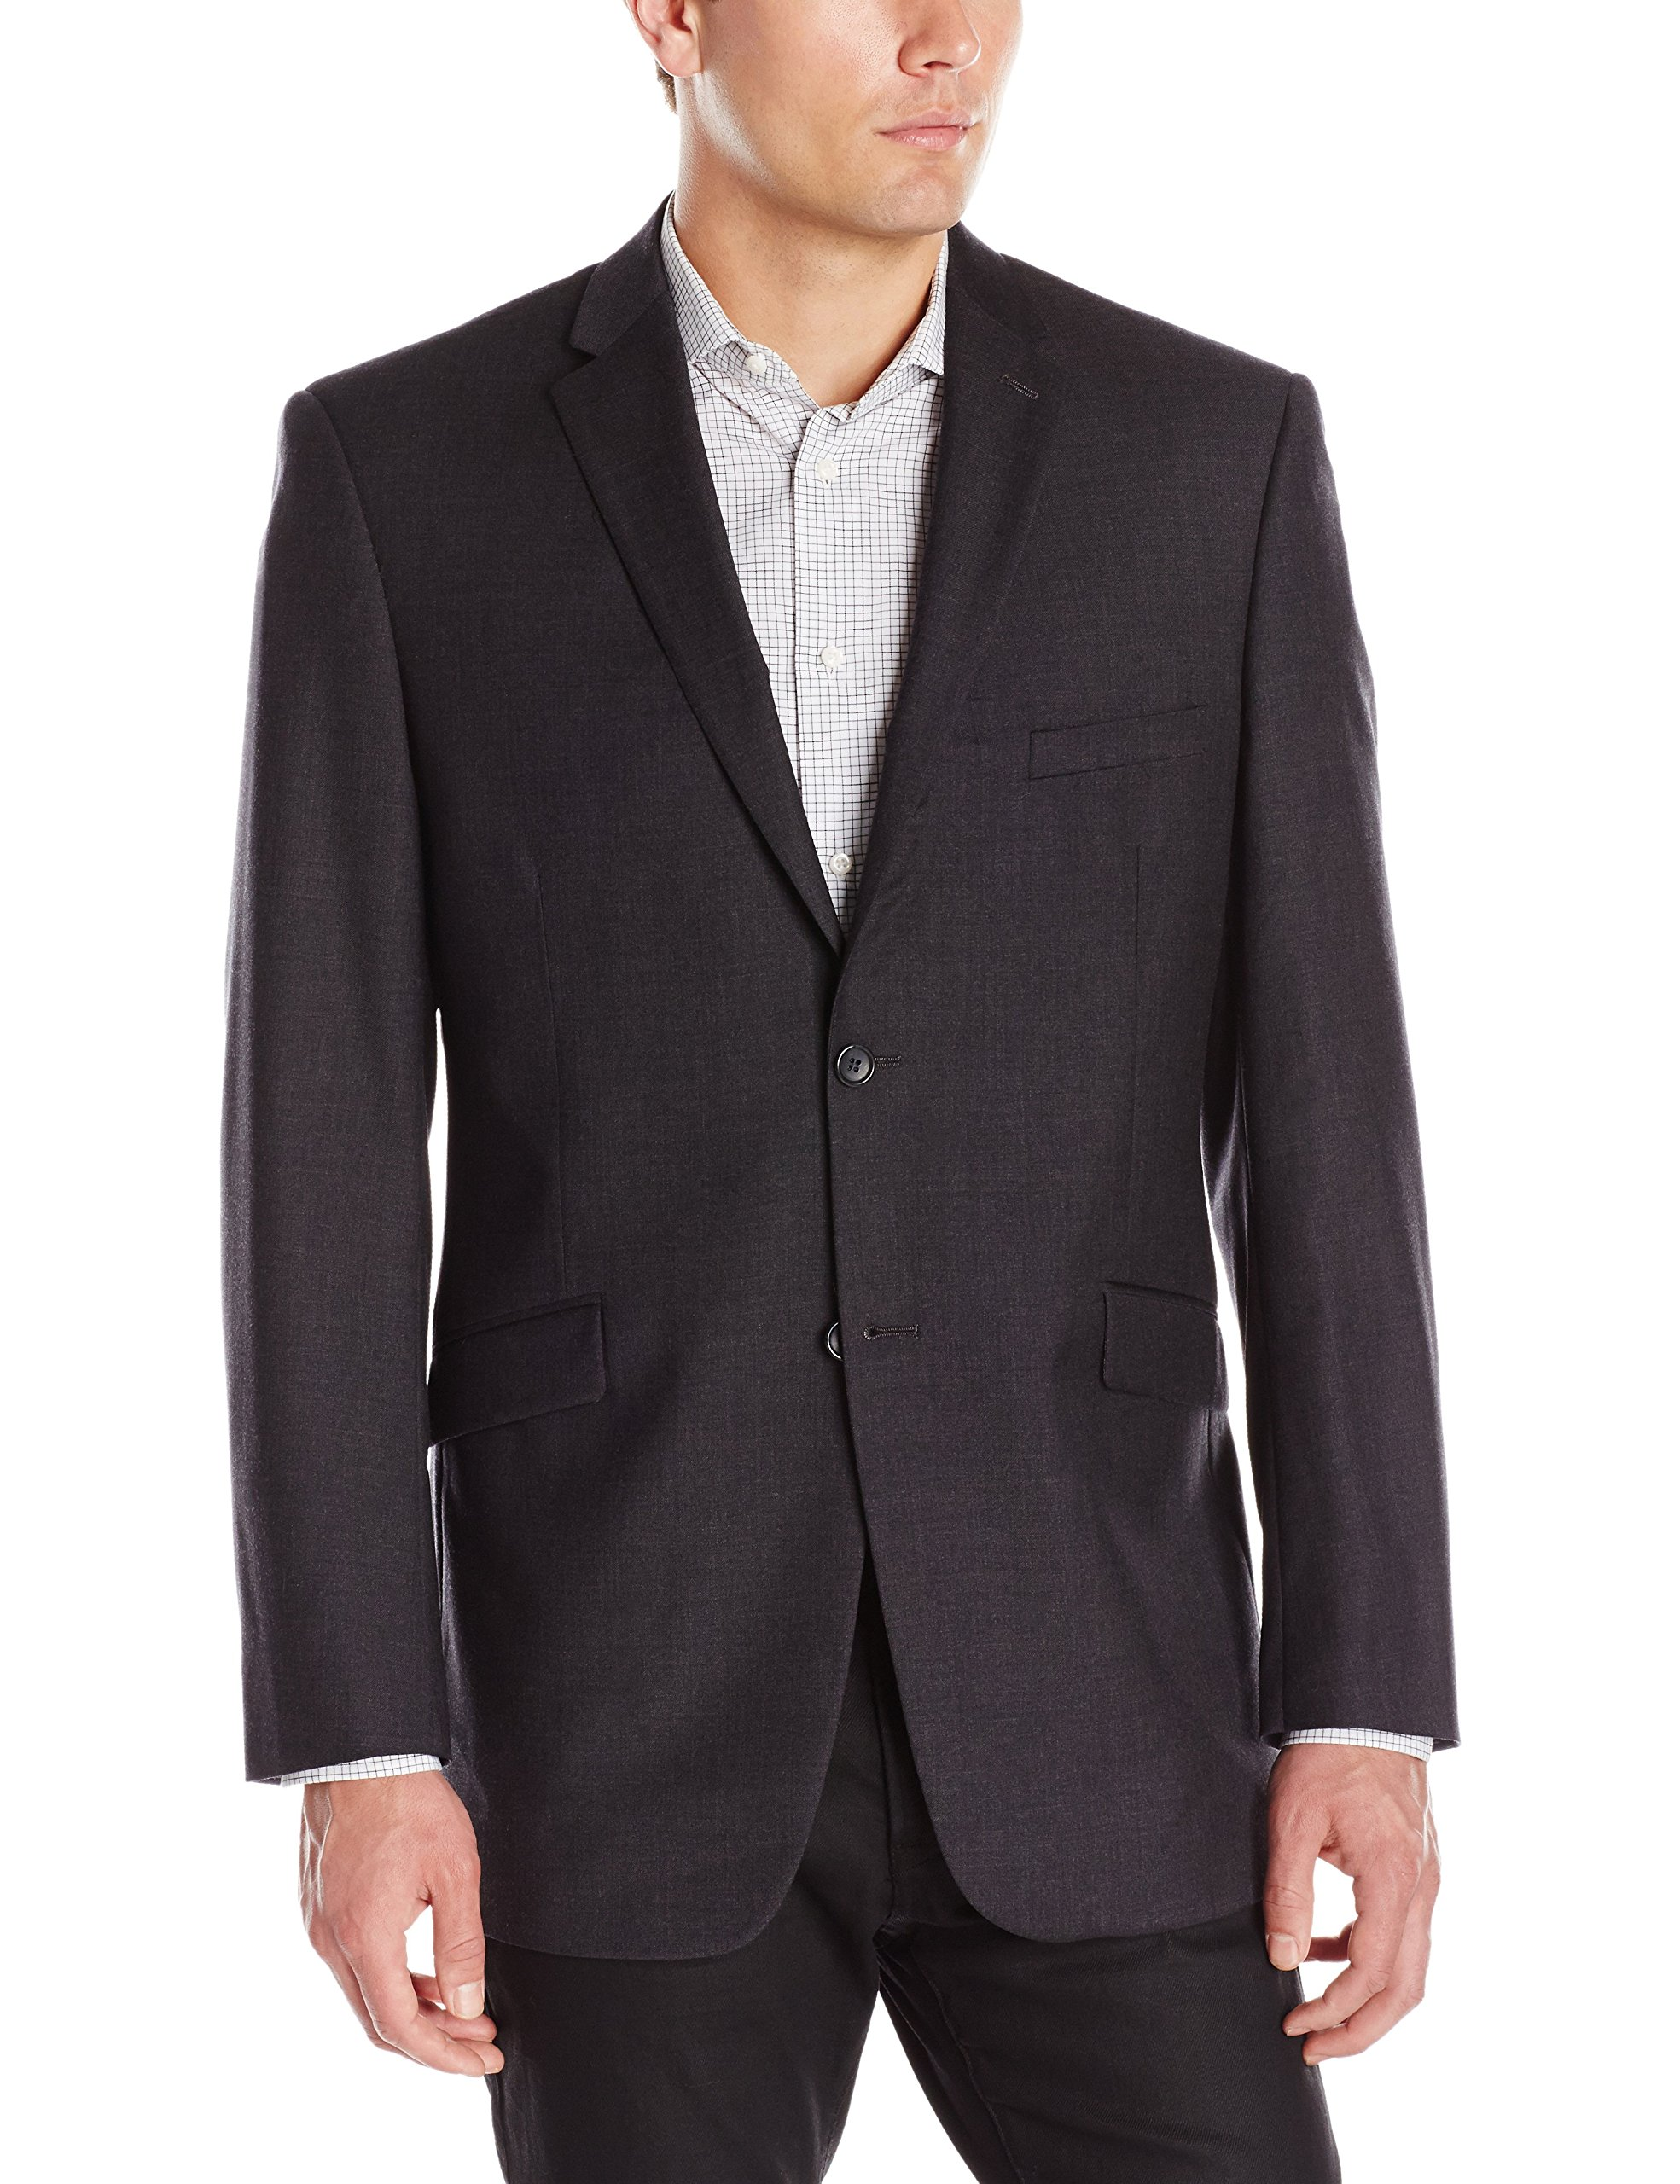 Adolfo Men's Wool and Cashmere Modern Fit Suit Jacket, Charcoal, 44 Long by Adolfo